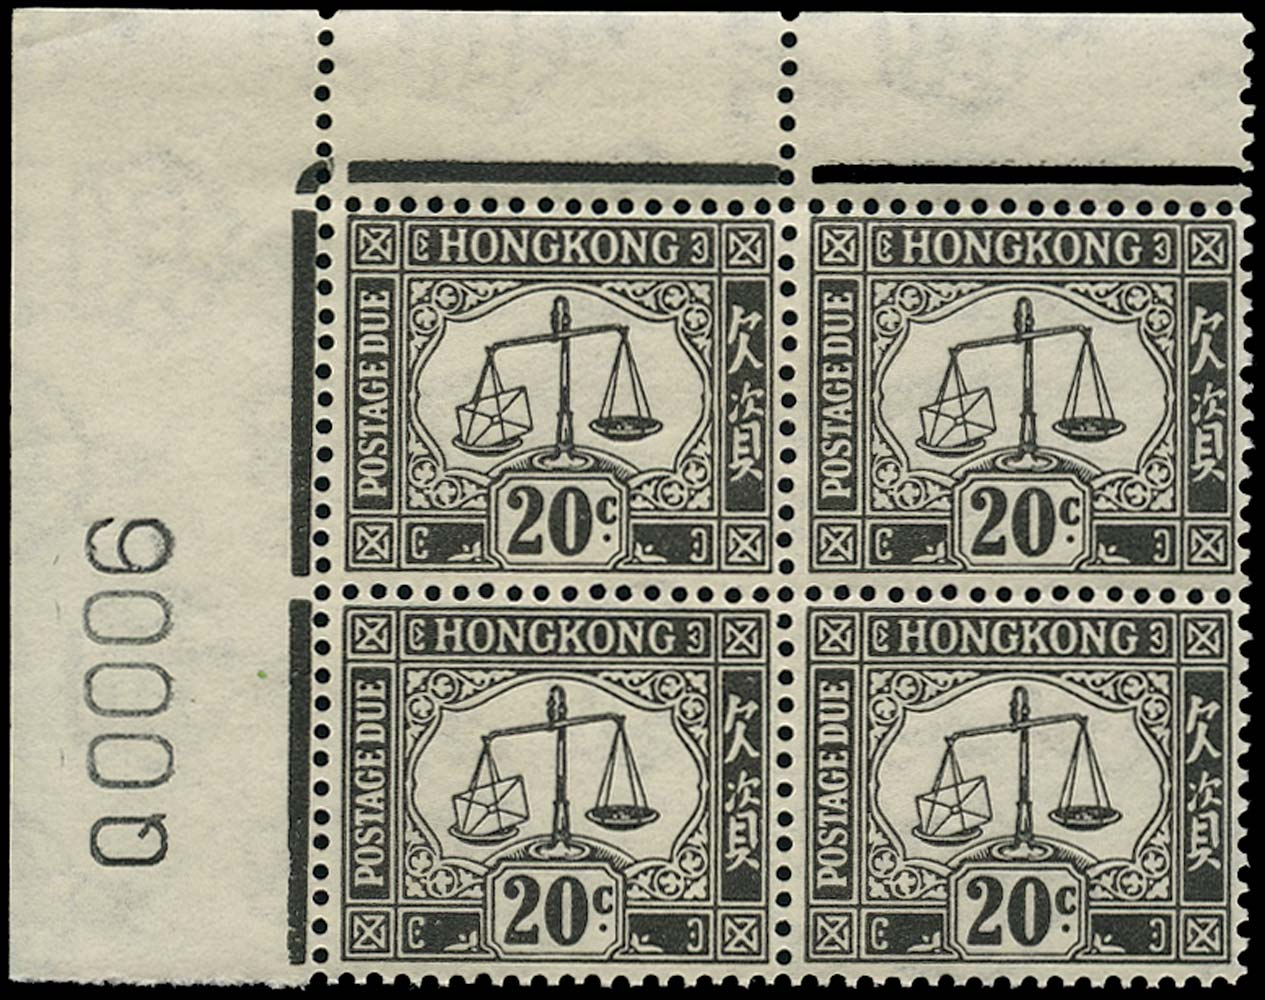 HONG KONG 1938  SGD11 Postage Due 20c black Script watermark unmounted